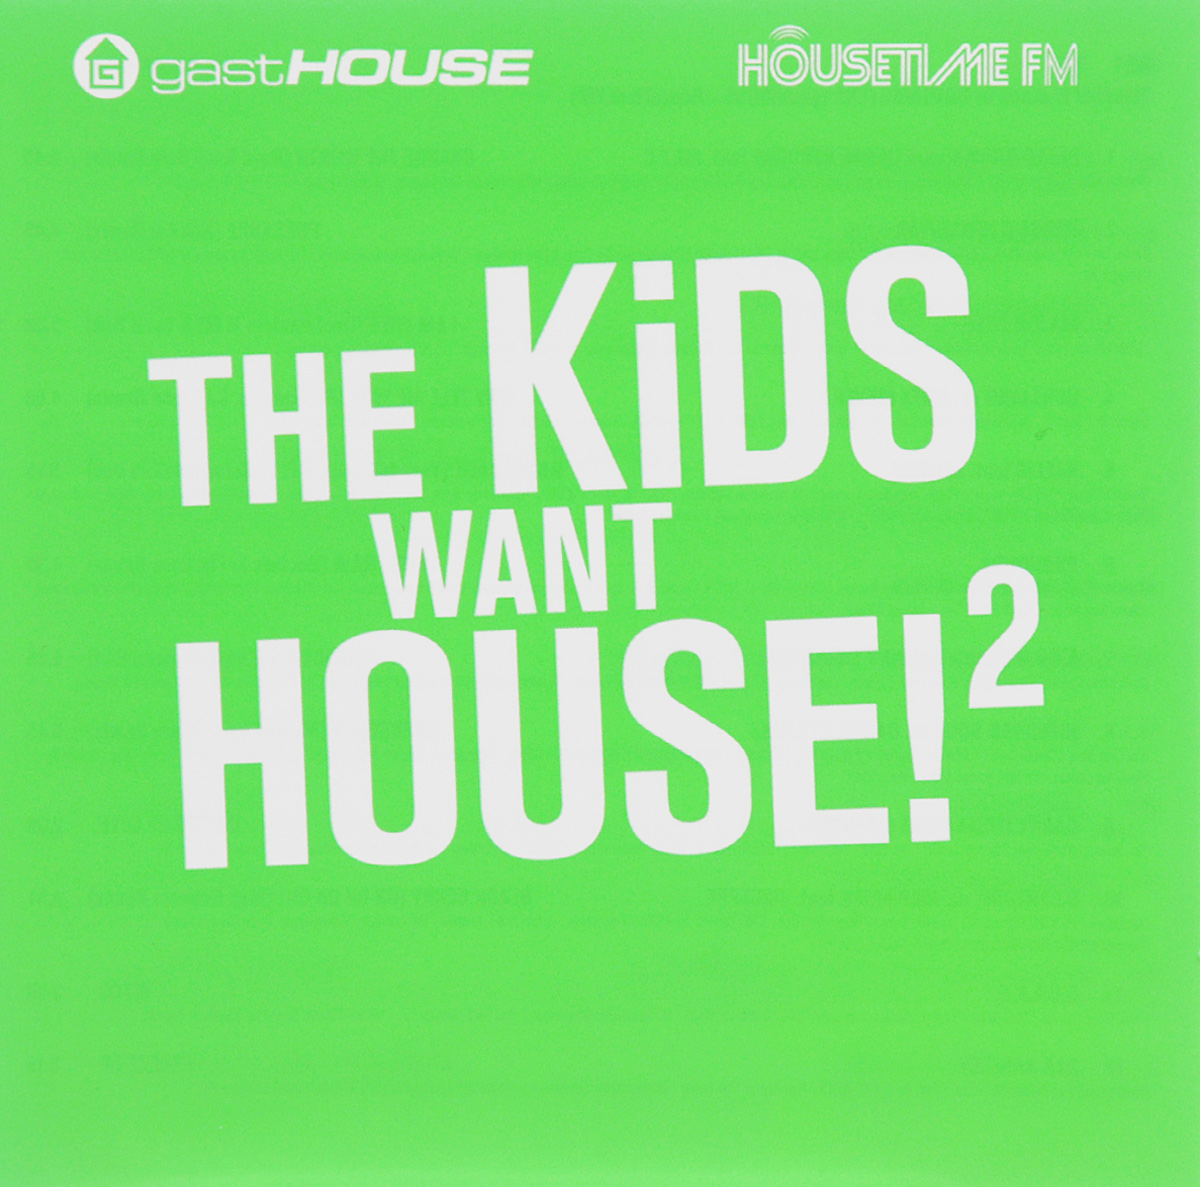 Питер Браун,Danny Freakazoid,Уолли Лопез,Quake,Нильс Ван Гог,Bootmasters,My Digital Enemy,Kaiserdisco,Terrazi,The Green Eye The Kids Want House! 2 (2 CD) minimal house 3 2 cd